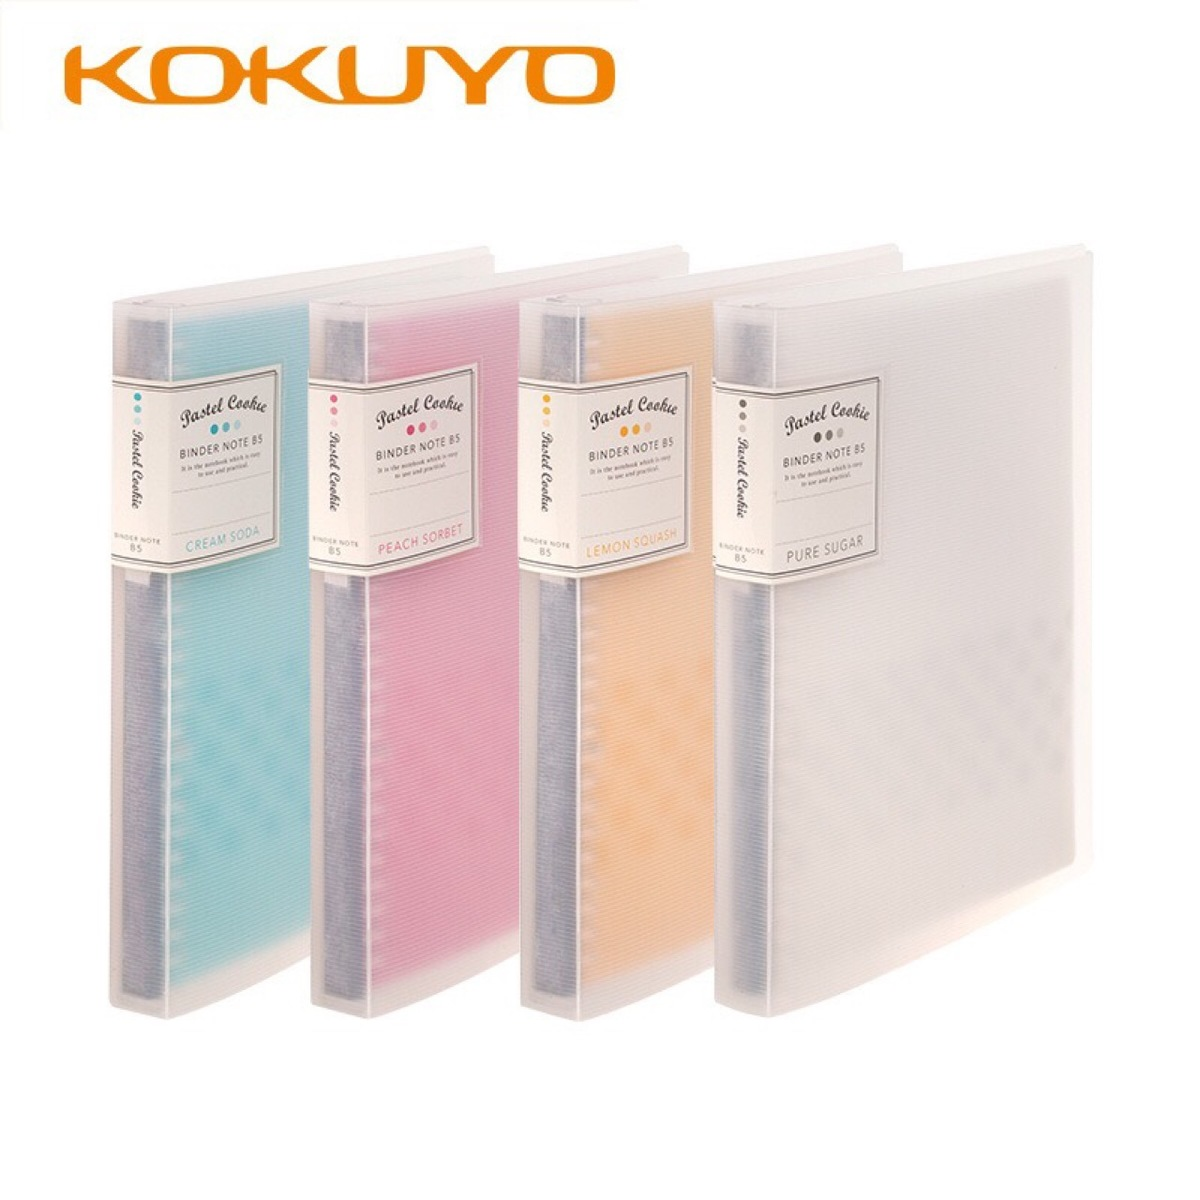 KOKUYO A5 B5 Removable Loose Leaf Notebook Refill Spiral Binder Planner Inner Page Inside Paper Dairy Weekly Monthly Plan Line standard b5 spiral notebook inside 60 pcs quality kraft paper page 9 hole on paper loose leaf page for genuine leather notebook